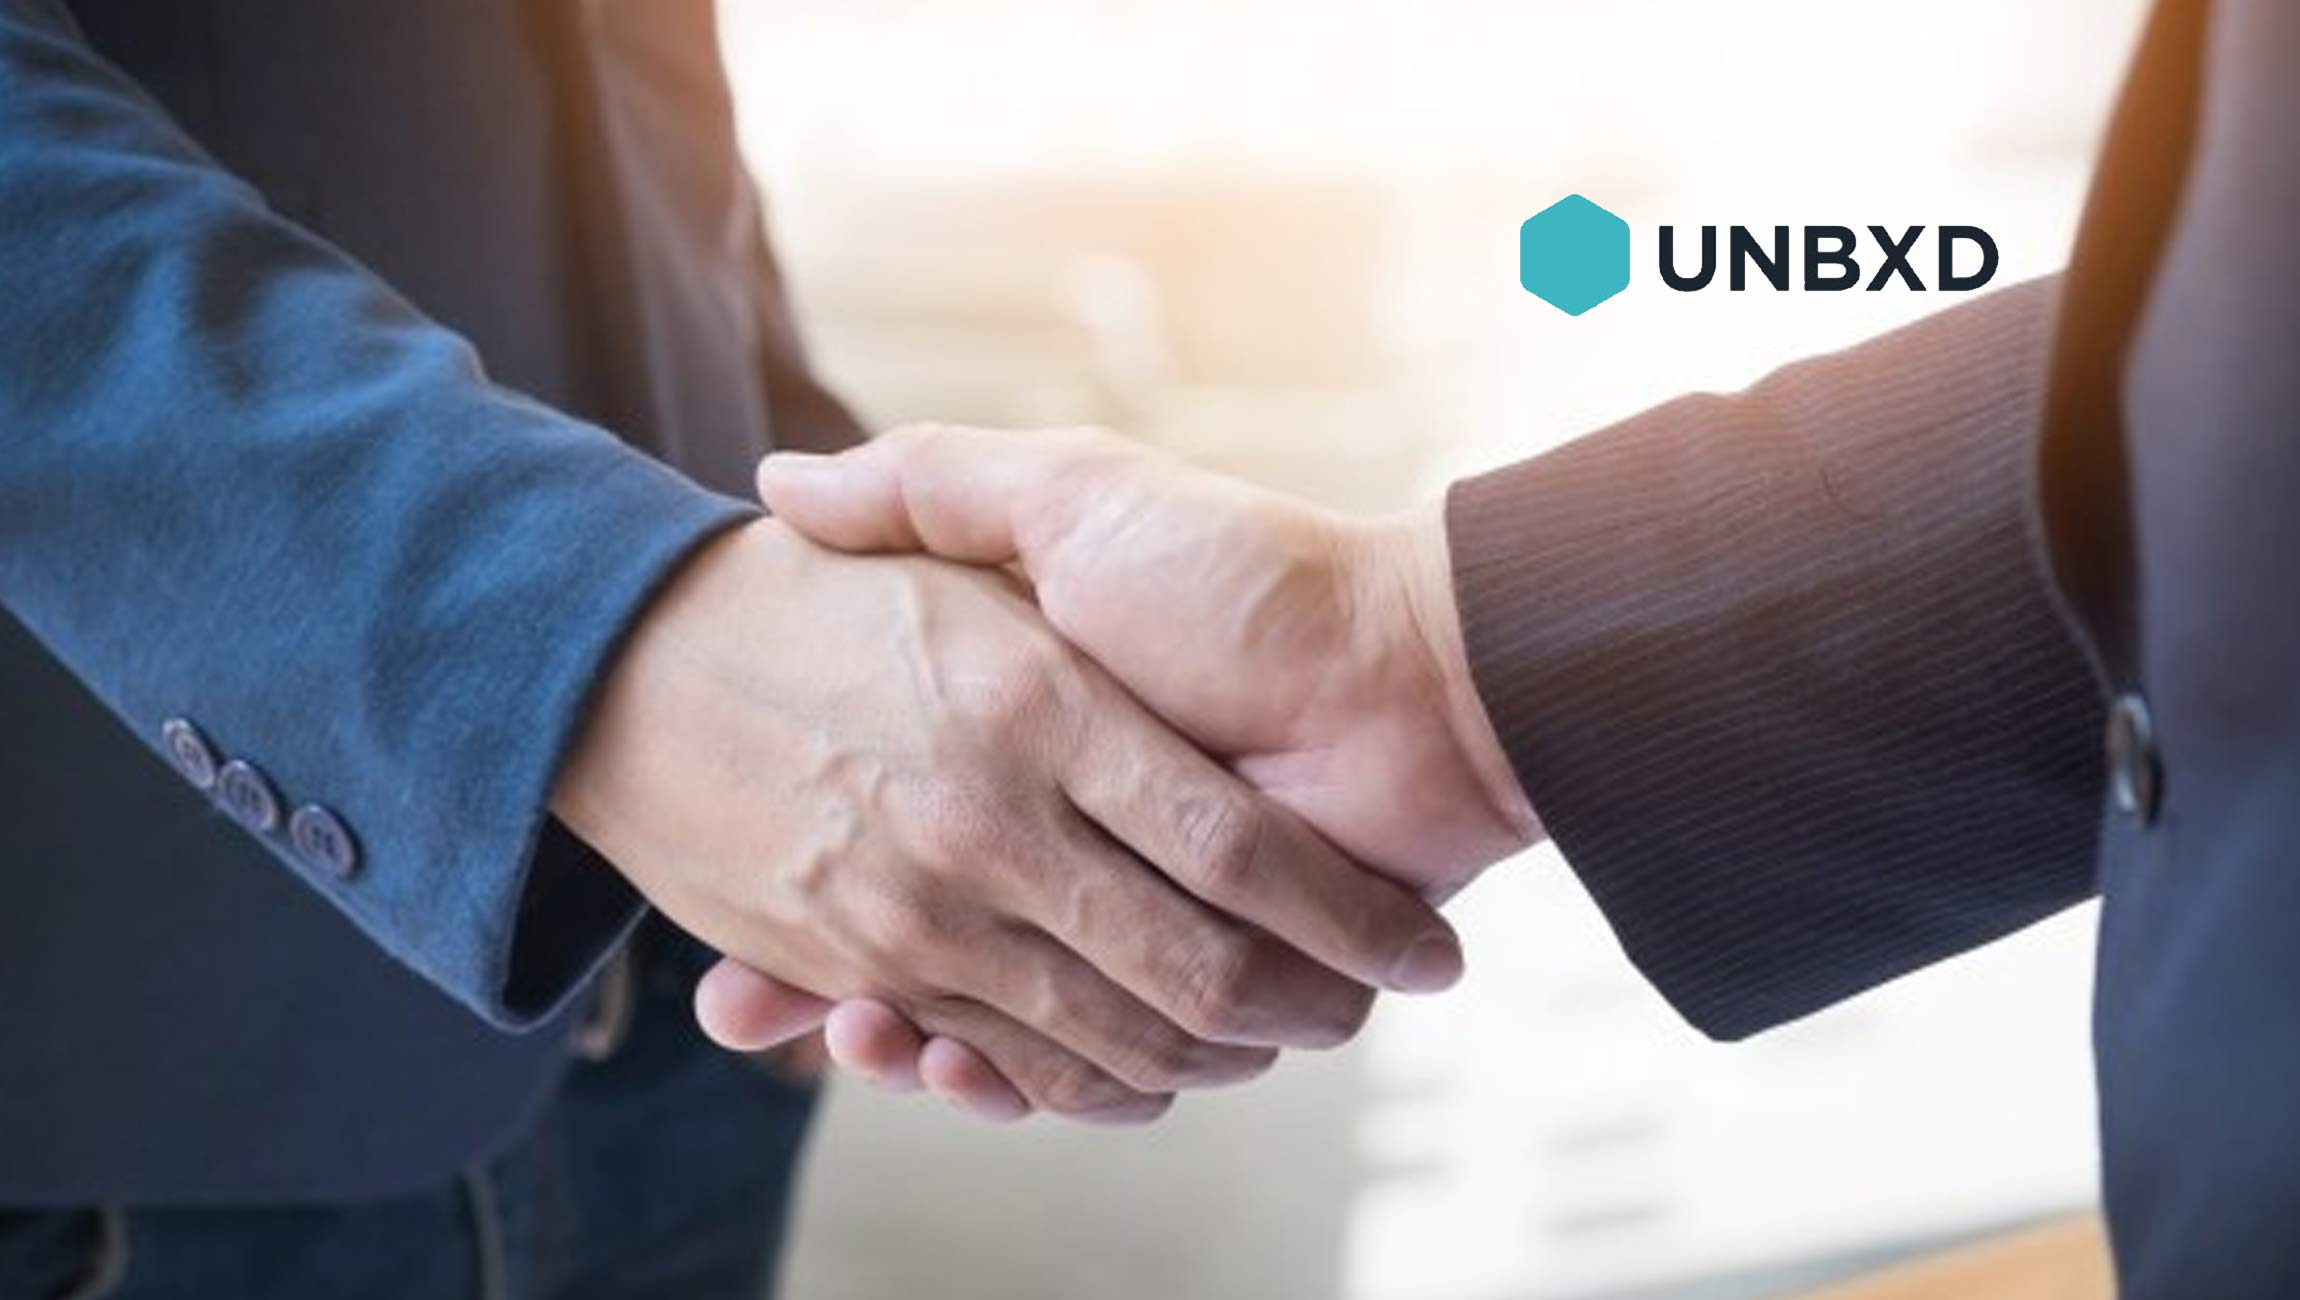 Unbxd Joins Adobe Exchange Partner Program to Automate Site Search and Relevance Setup for Adobe Customers 10